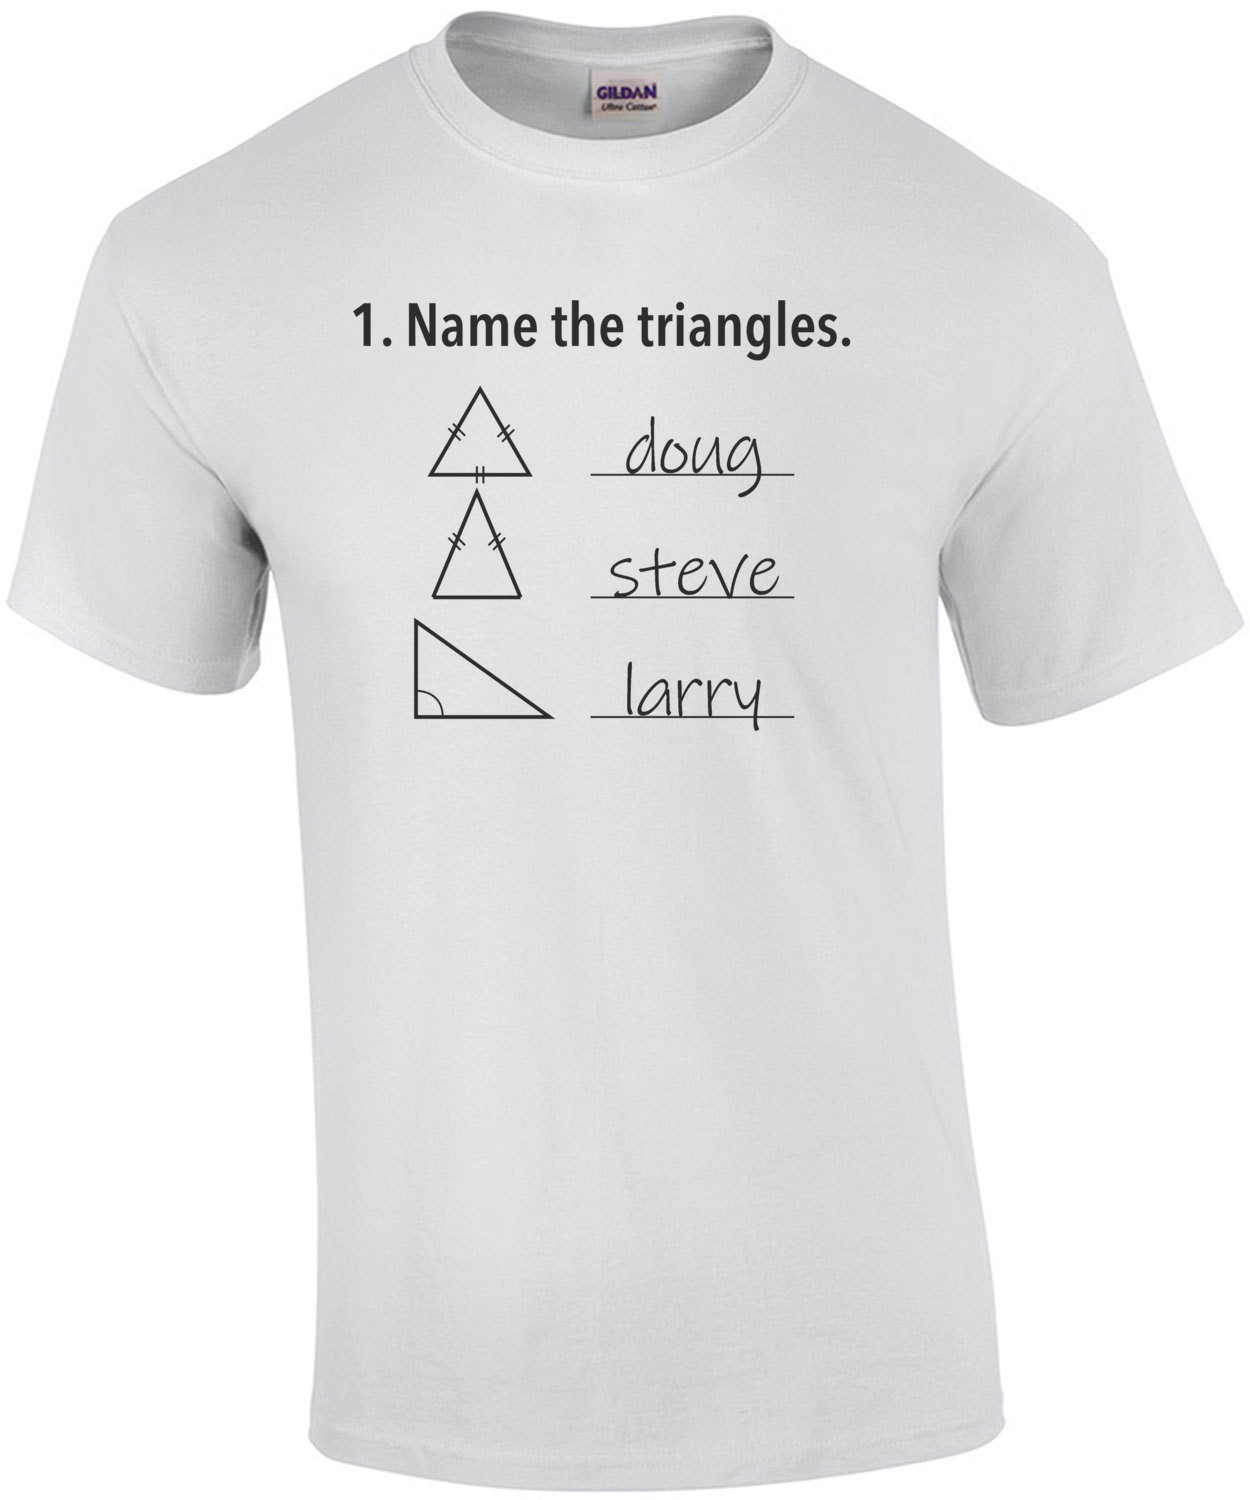 Name the triangles. Funny T-Shirt